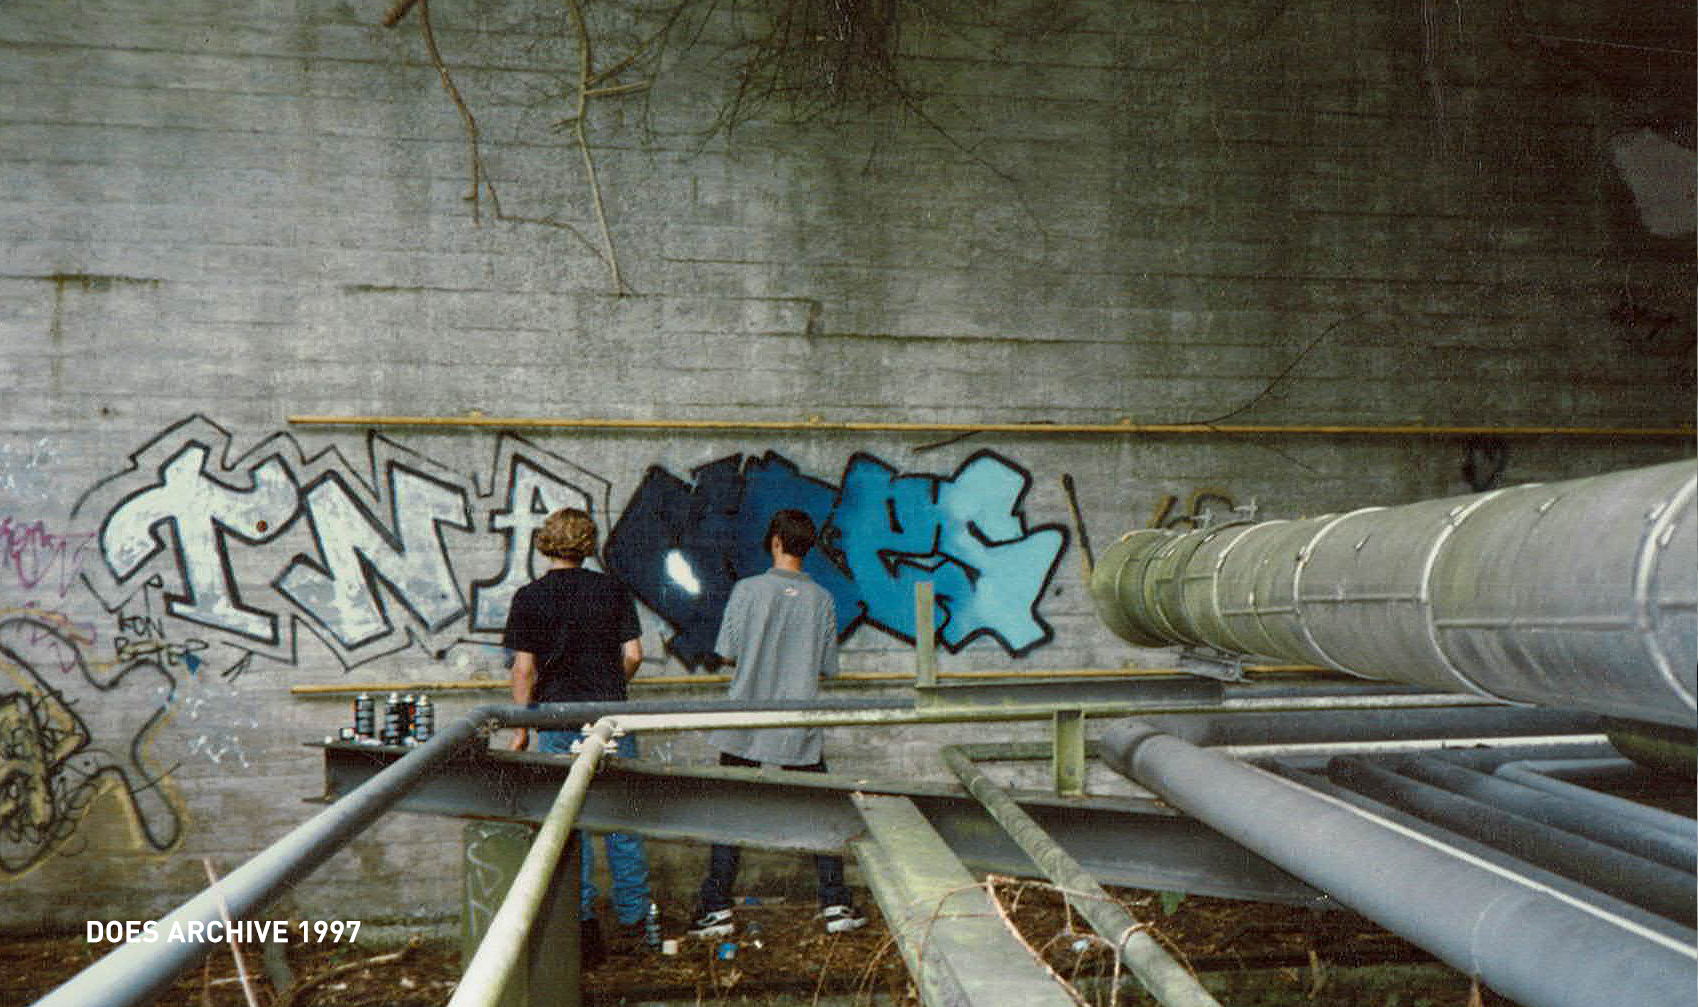 A work by Does - Hall of fame geleen 1997 9